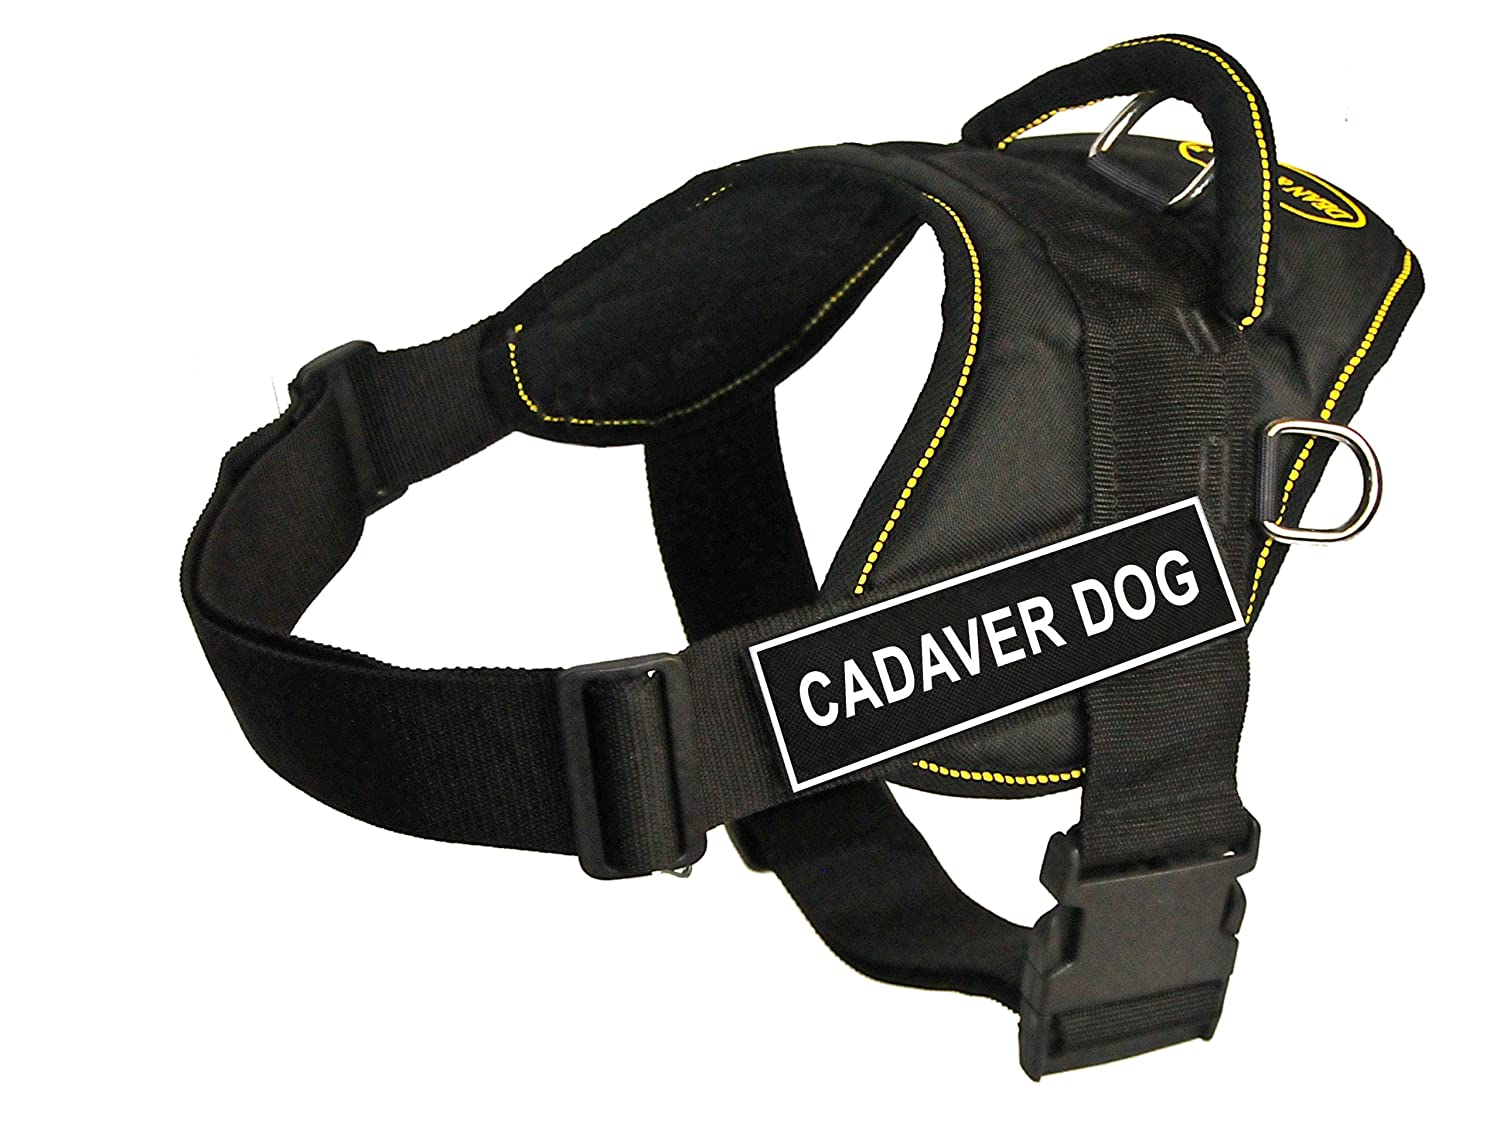 Dean & Tyler Fun Works 22-Inch to 27-Inch Pet Harness, Small, Cadaver Dog, Black with Yellow Trim